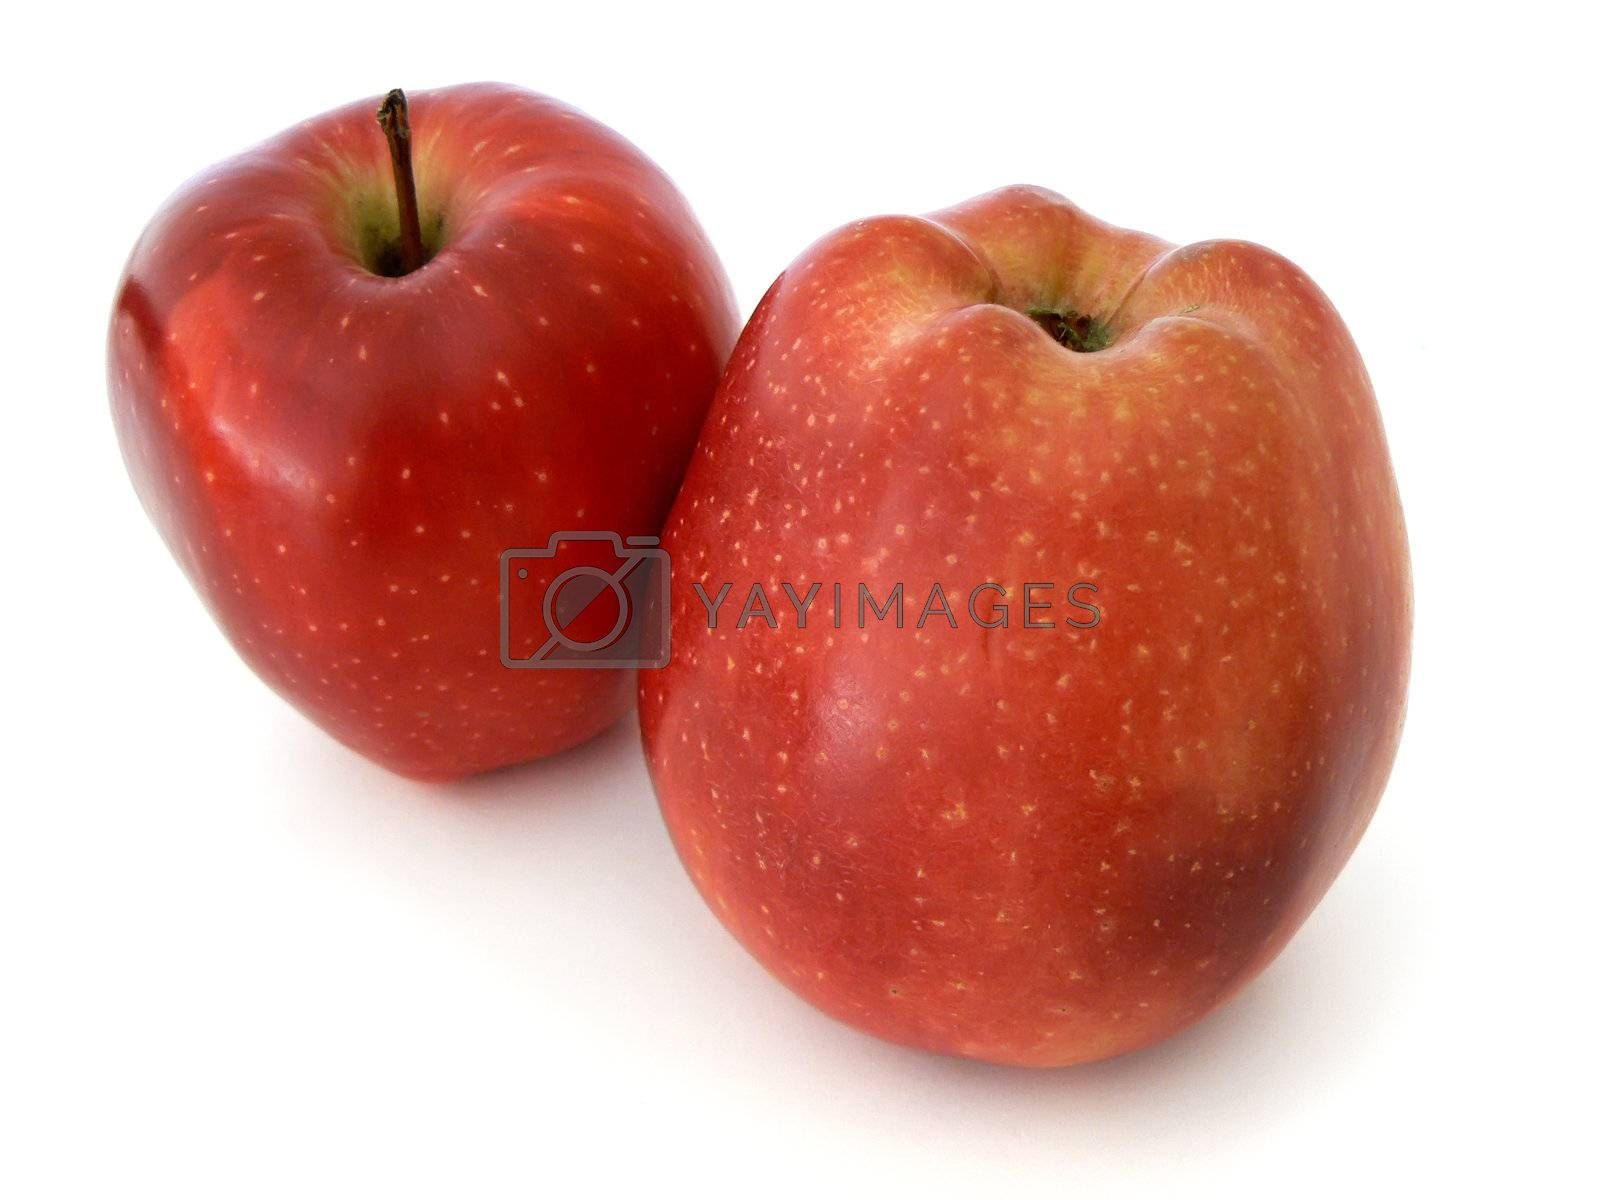 Two red apples isolated on white background